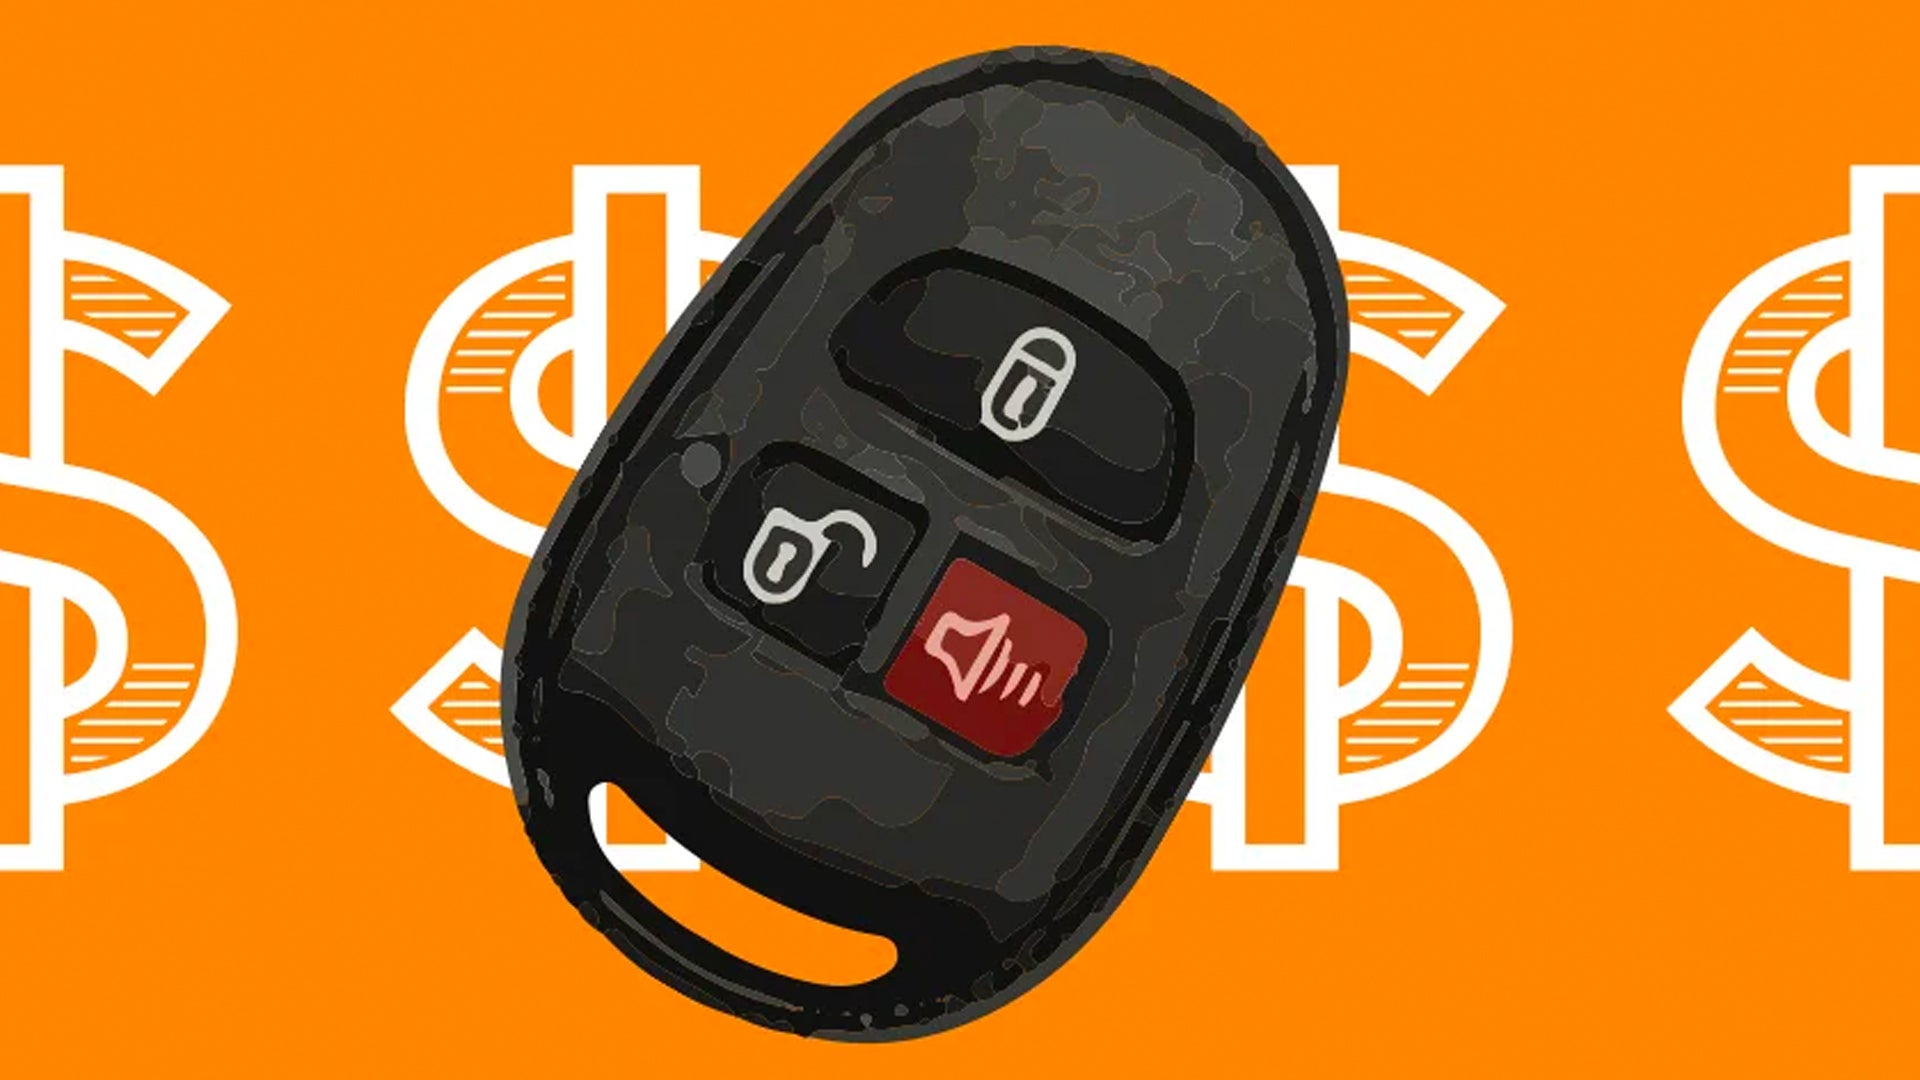 How to See if Your Old Car Has Keyless Entry You Didn't Know About